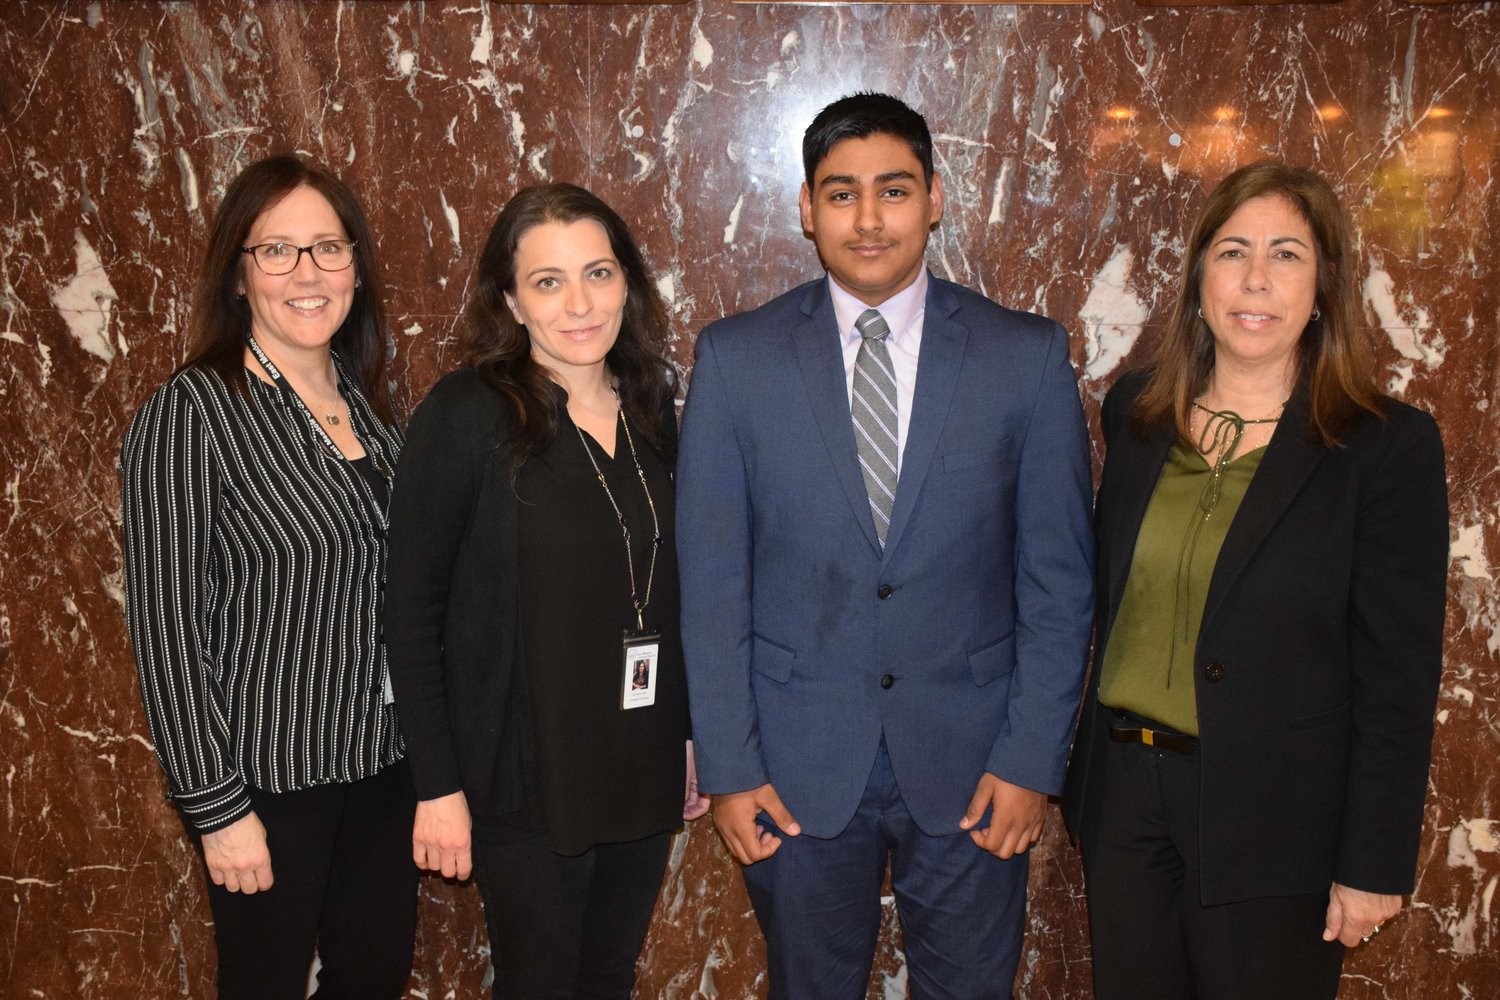 East Meadow High School freshman Kush Upadiyay, second from right, became the first East Meadow High School student to qualify for the ICDC national round with a third-place finish at the state round in March. Pictured, from left, with teacher Laura Mohring, assistant principal Christina Egan and business chairperson Toni McIntosh.